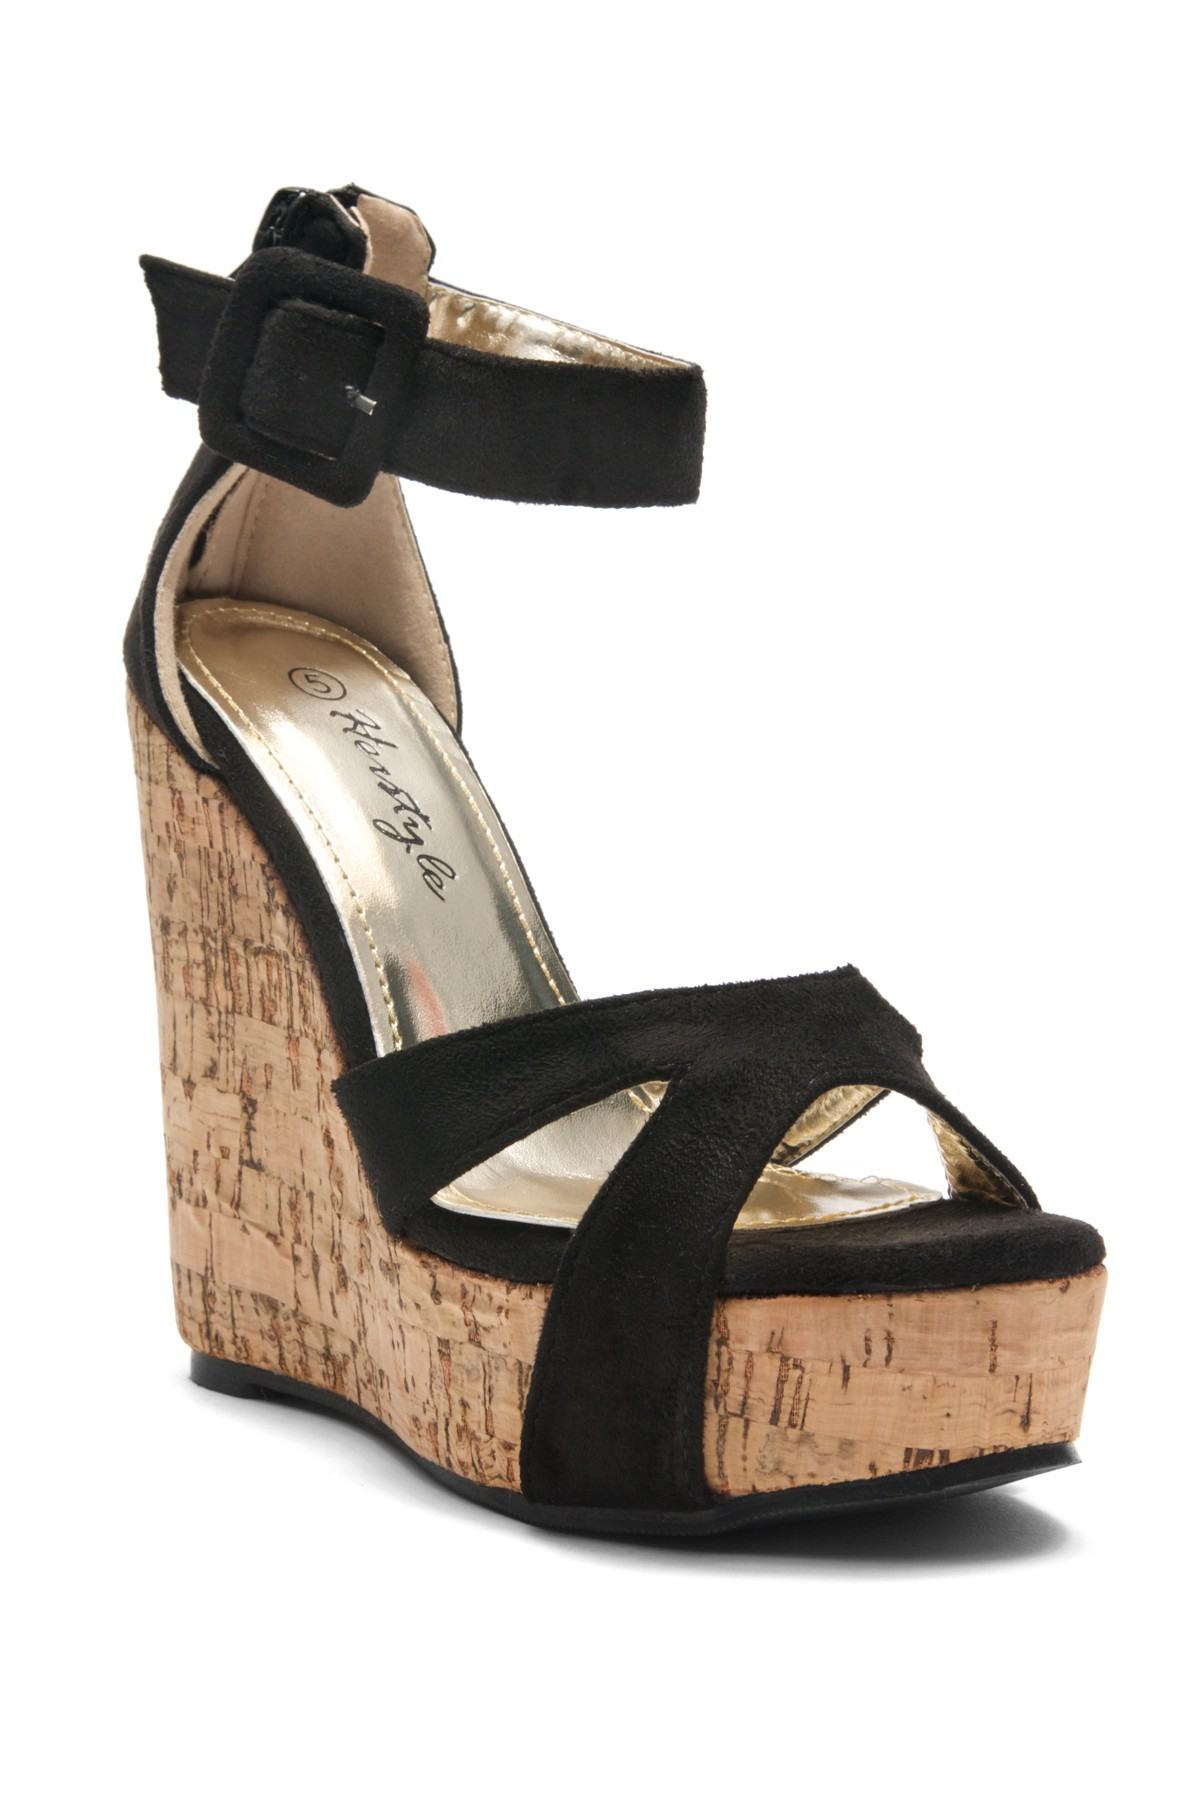 5e112435952 Women s Black Manmade Brenee 6-inch Cork Wedge Sandals with Bold Ankle  Buckle